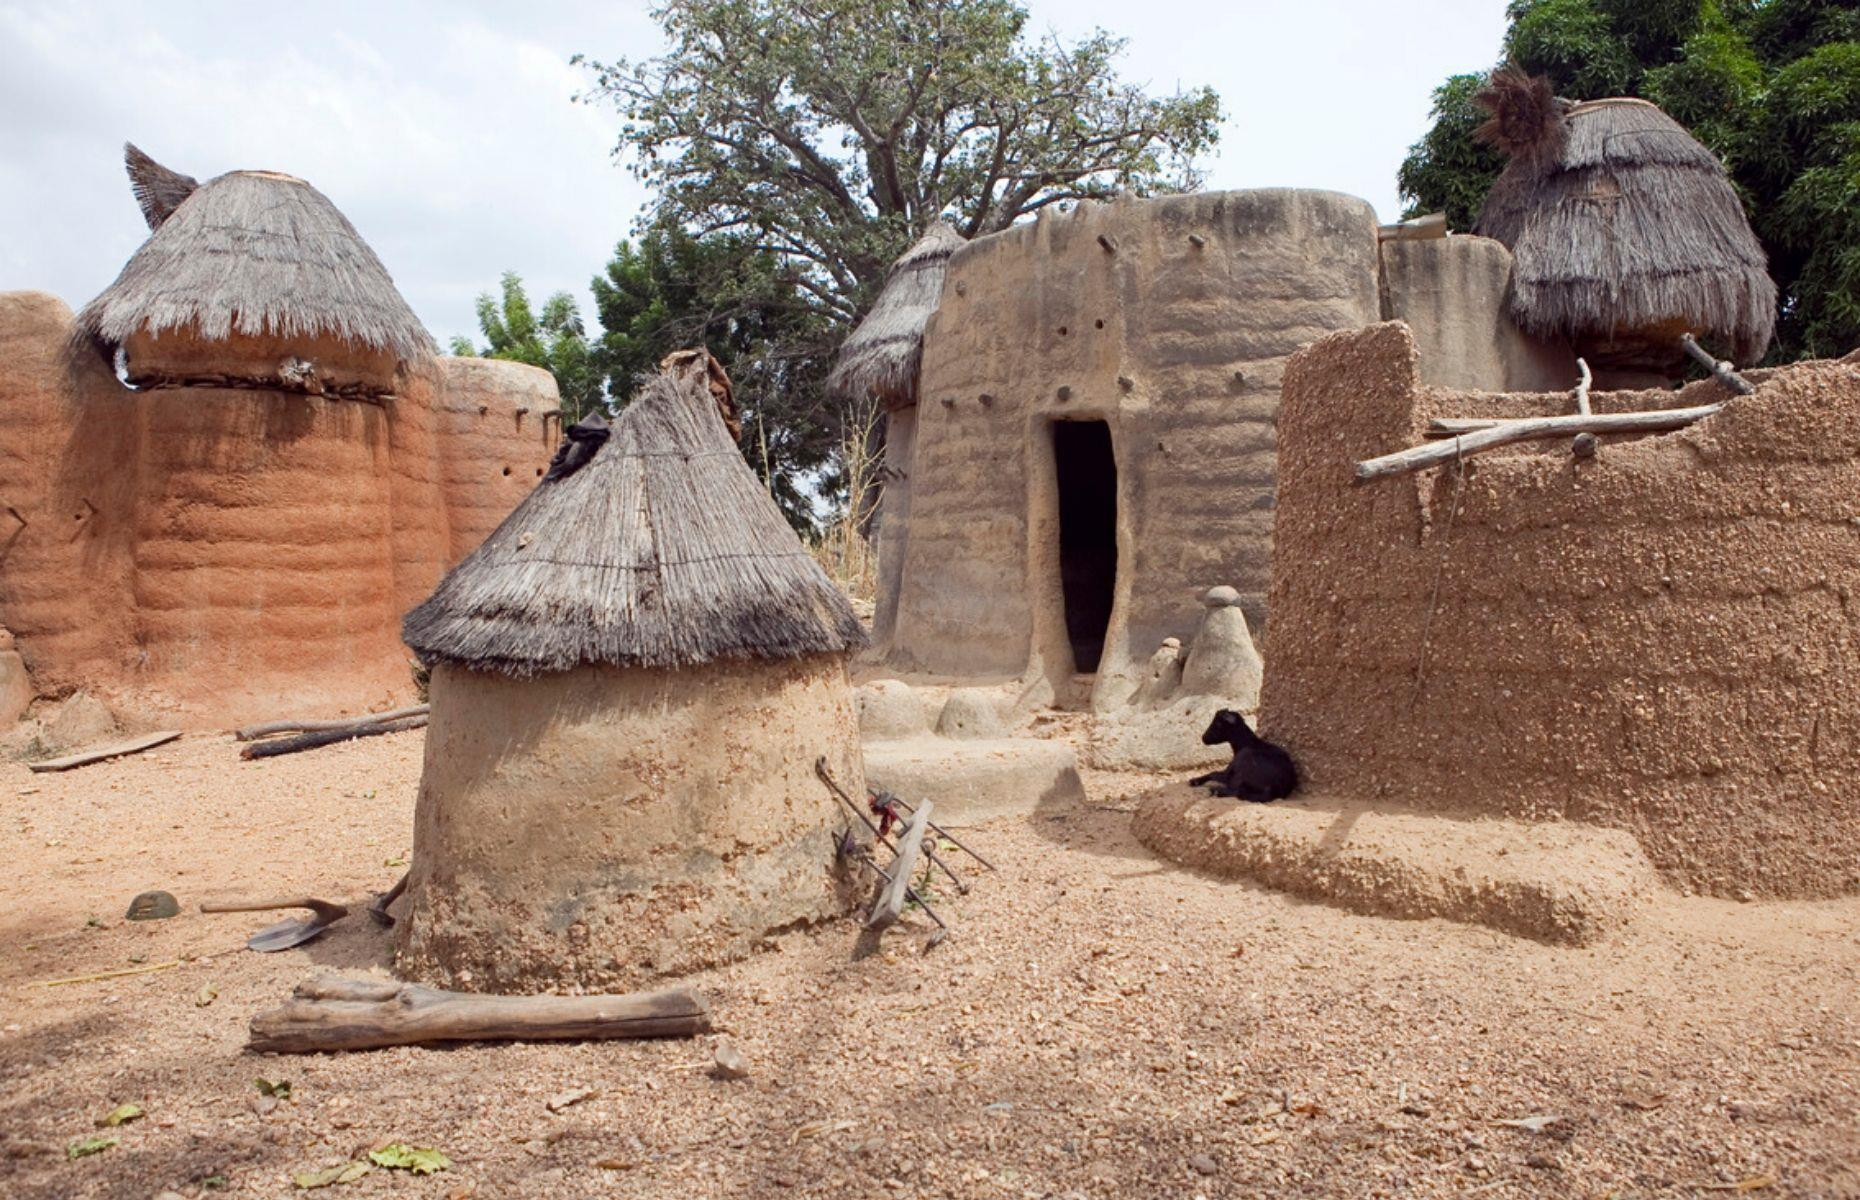 Slide 10 of 26: In Benin and Togo, close to Nigeria, the Batammariba people have been creating unique homes since the 17th century – in fact, their takienta mud houses are closely bound up with their cultural identity. Built in layers, these unique homes have been added to the World Heritage List, but this isn't enough to protect the traditions of the Batammariba tribe. The WMF is thus committed to helping the people of Koutammakou, through the conservation of their signature architecture.